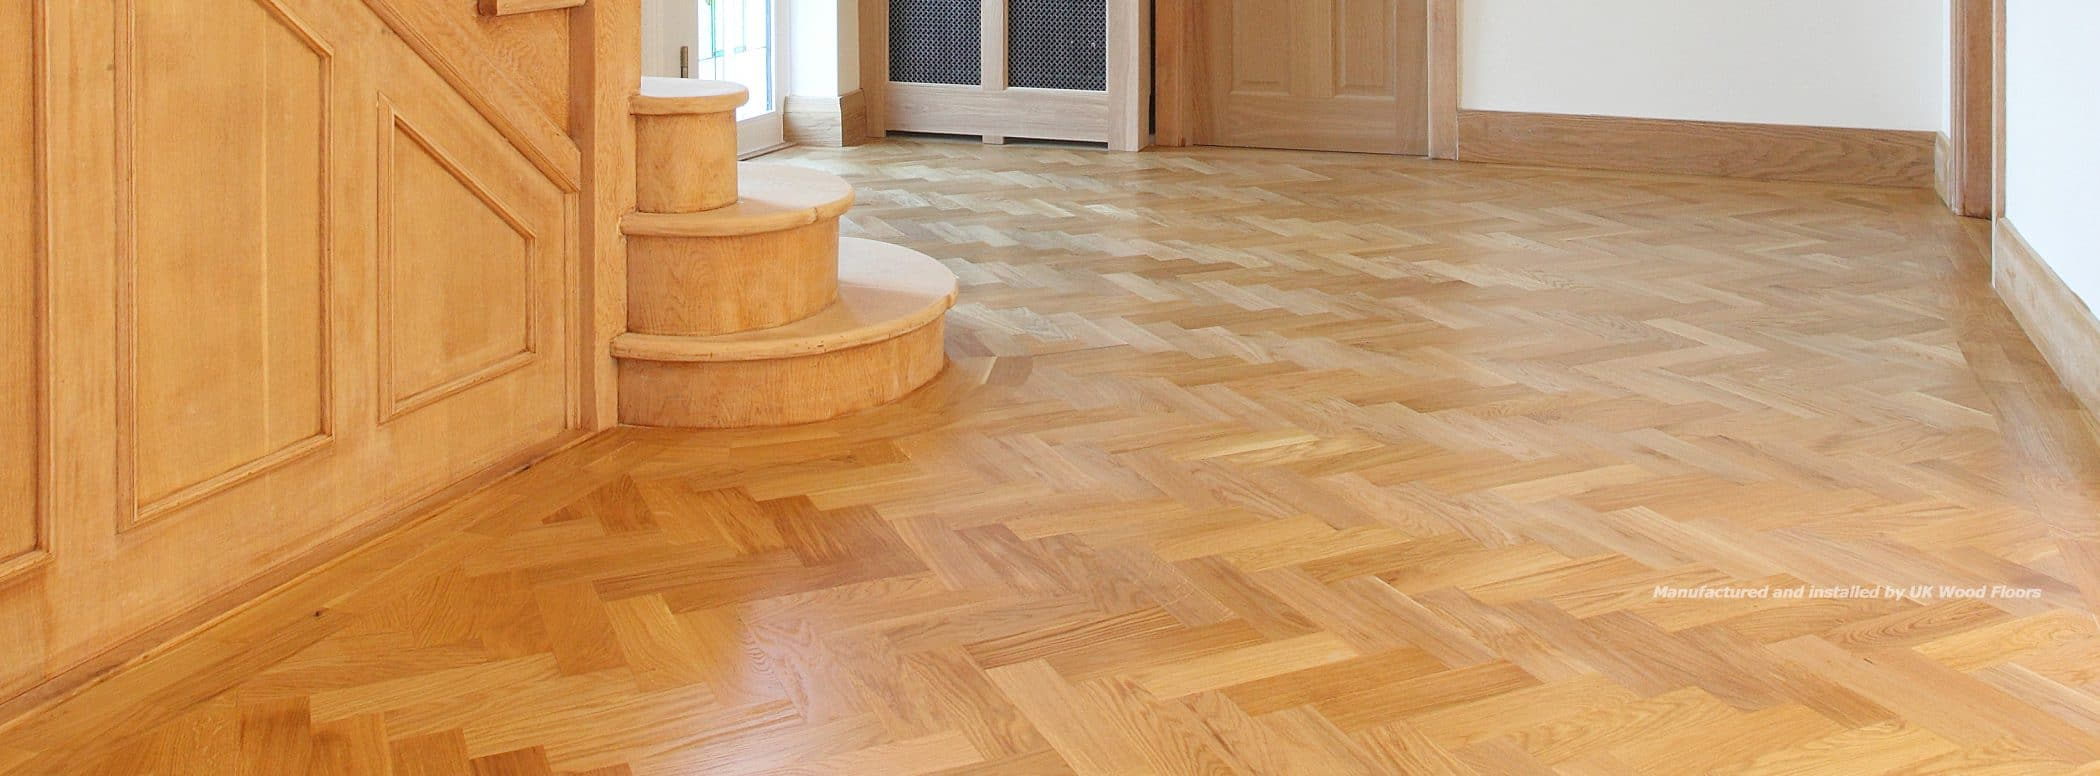 Parqet Parquet Blocks Uk Wood Floors And Bespoke Joinery